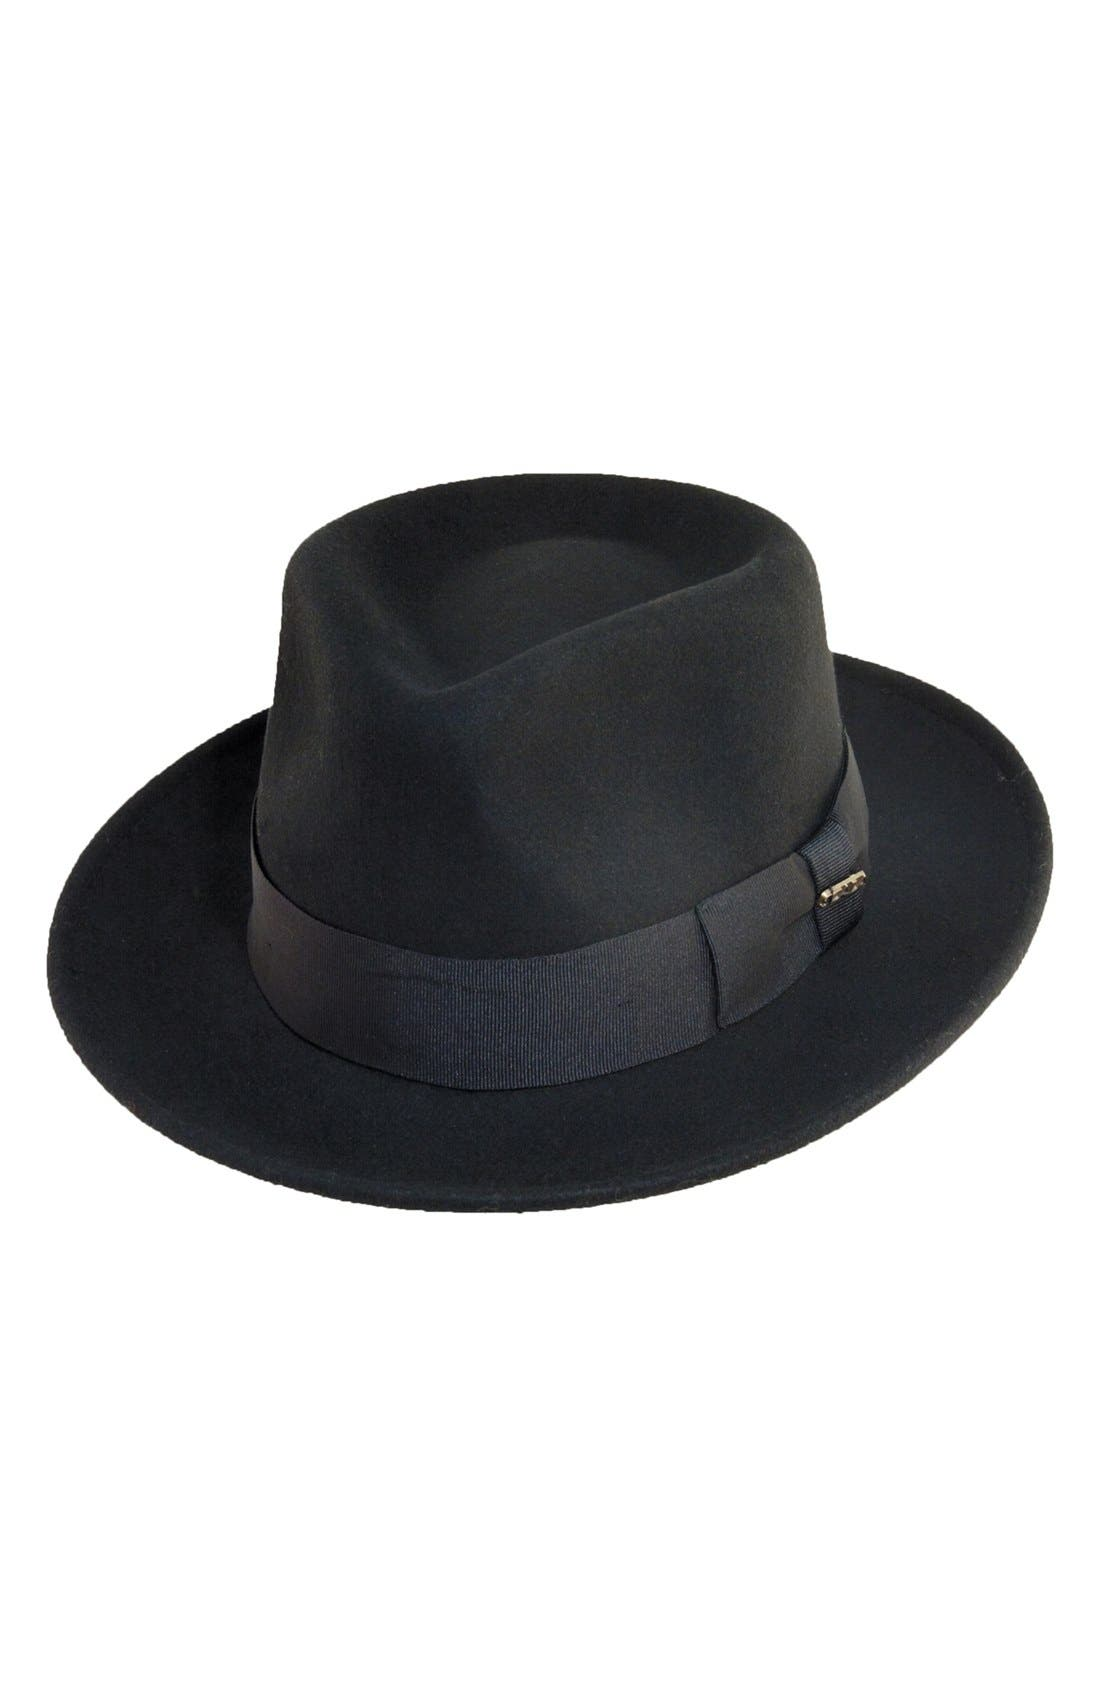 1950s Men's Clothing Mens Scala Classico Wool Felt Fedora - Black $46.00 AT vintagedancer.com